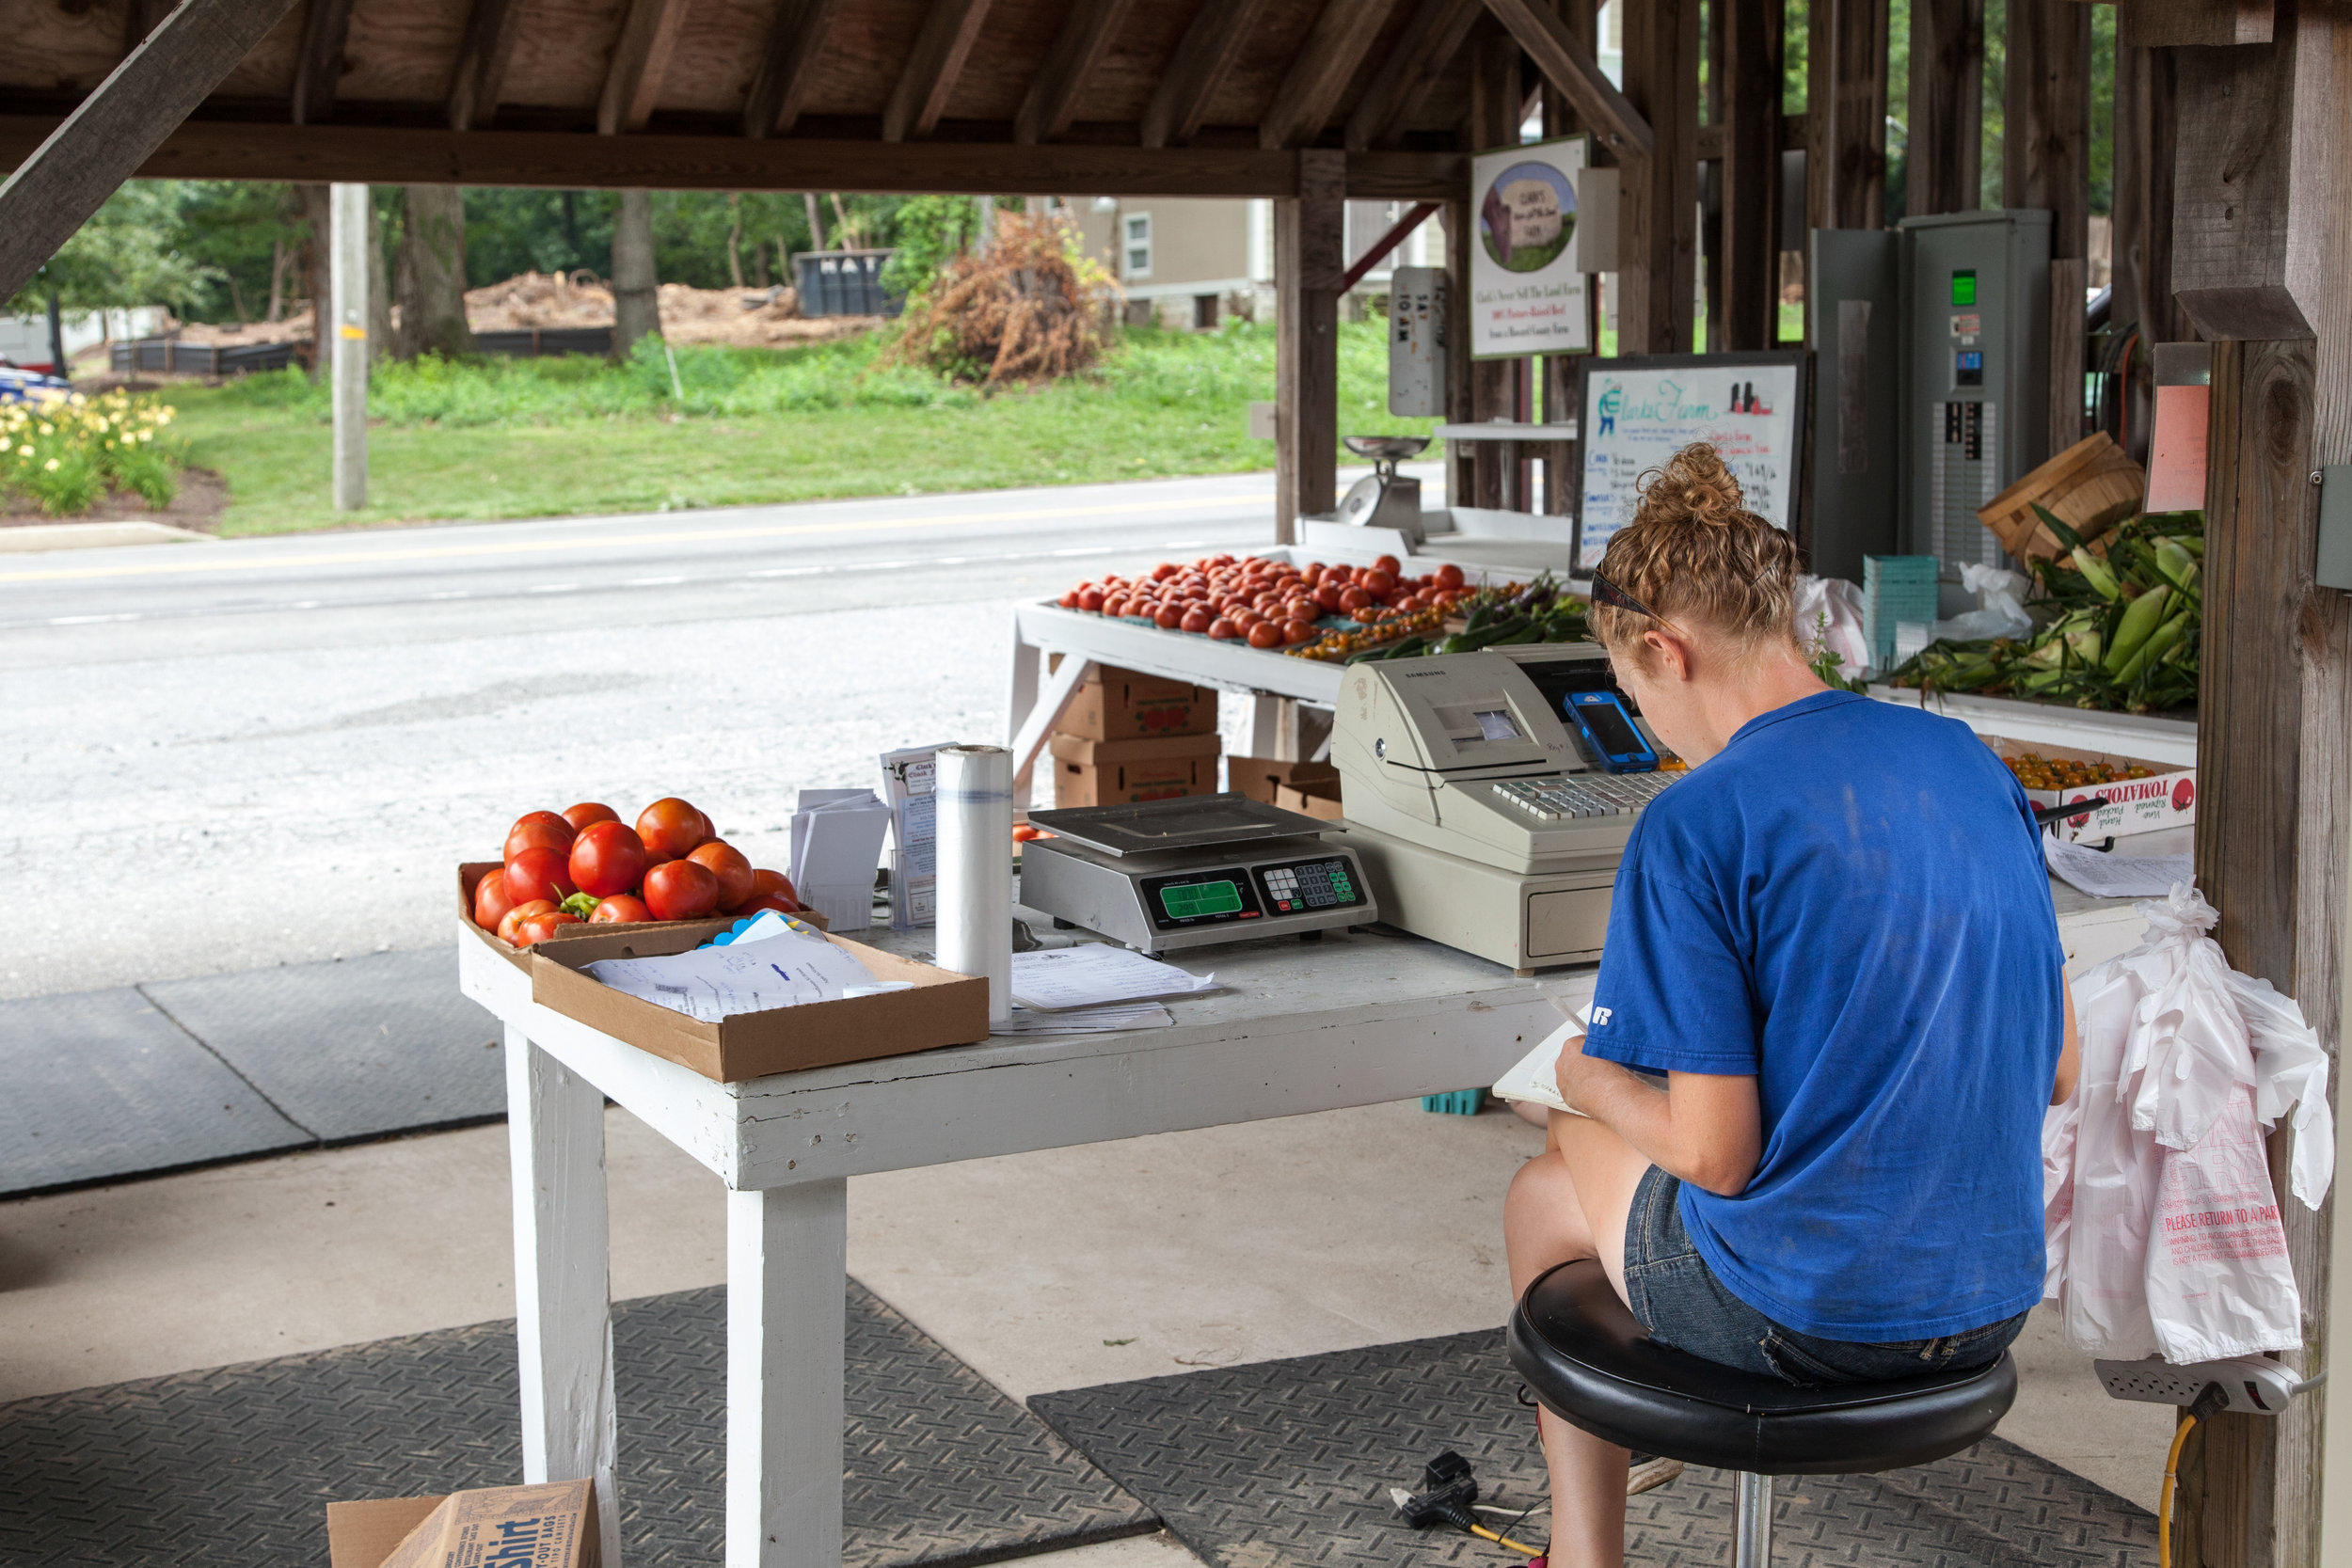 Nora waits for customers at the family farm stand.